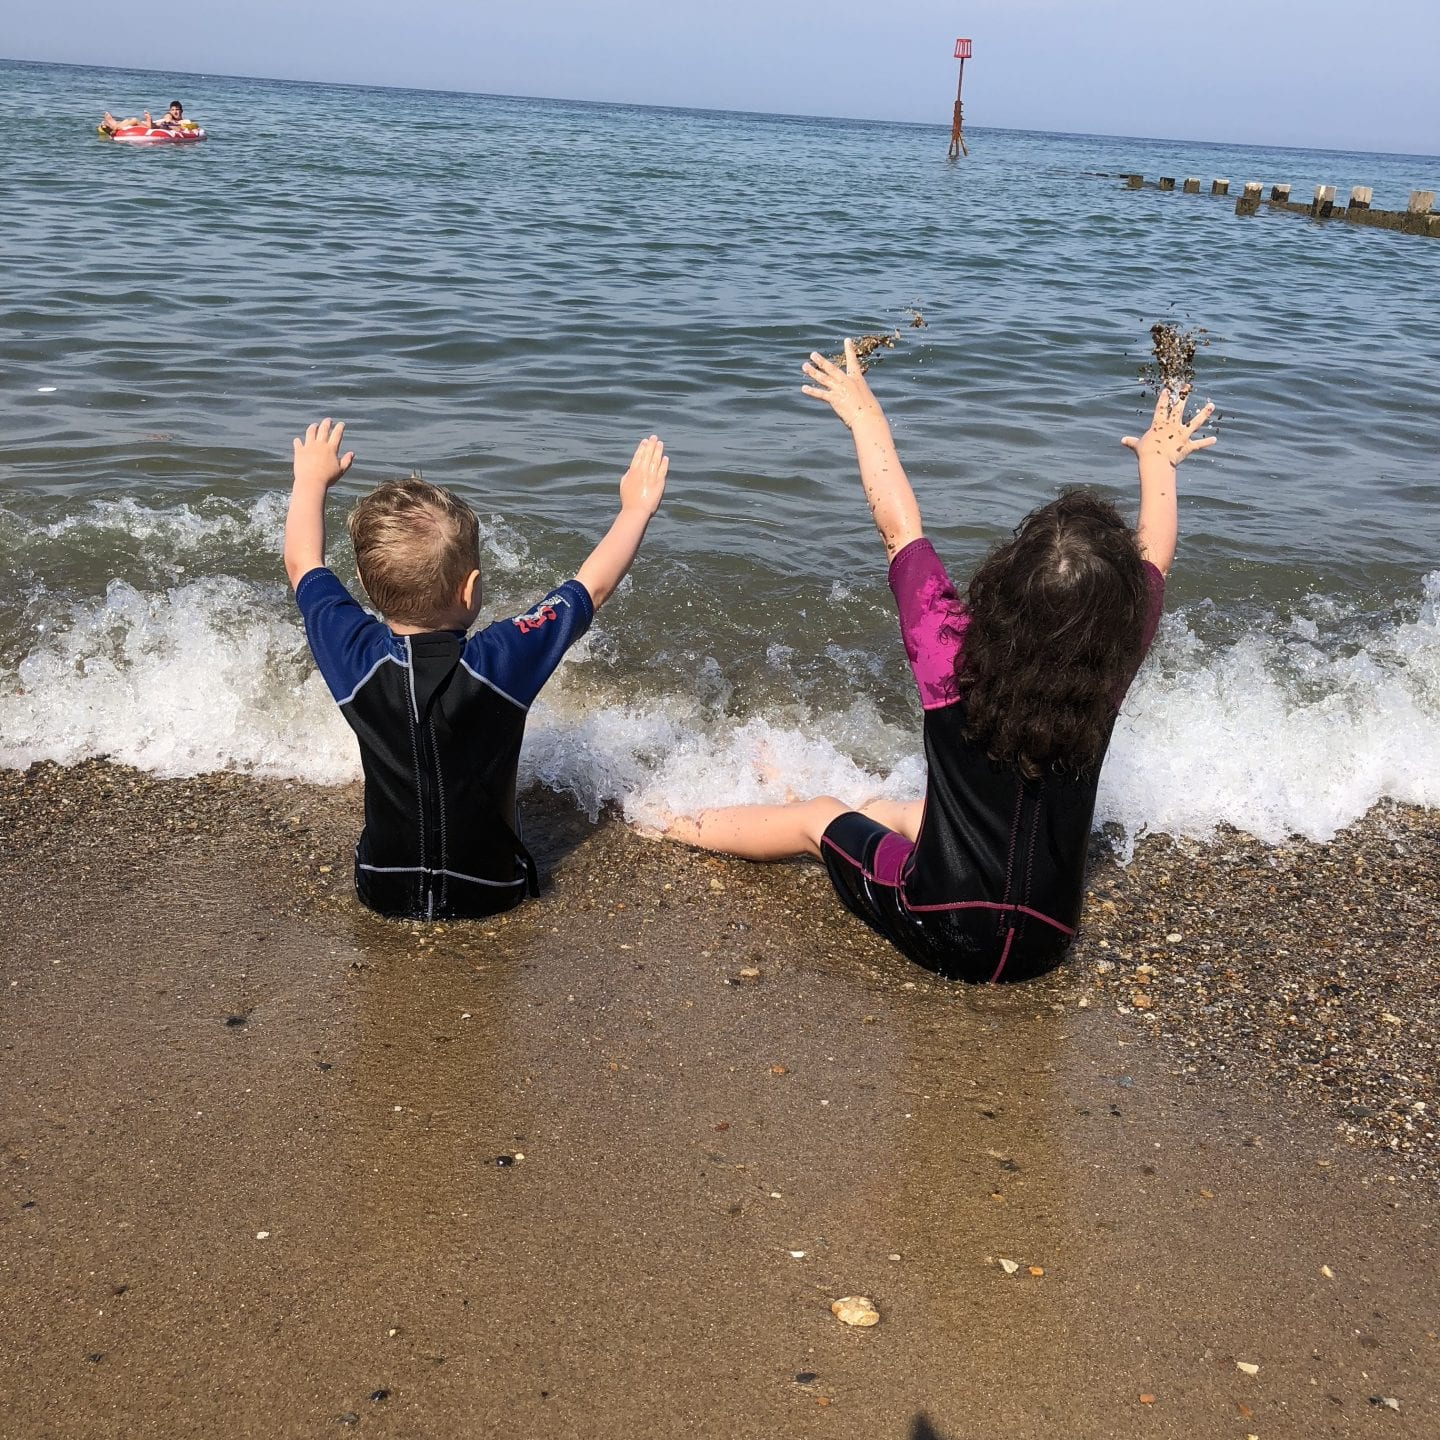 2 young children sitting on a beach in the surf